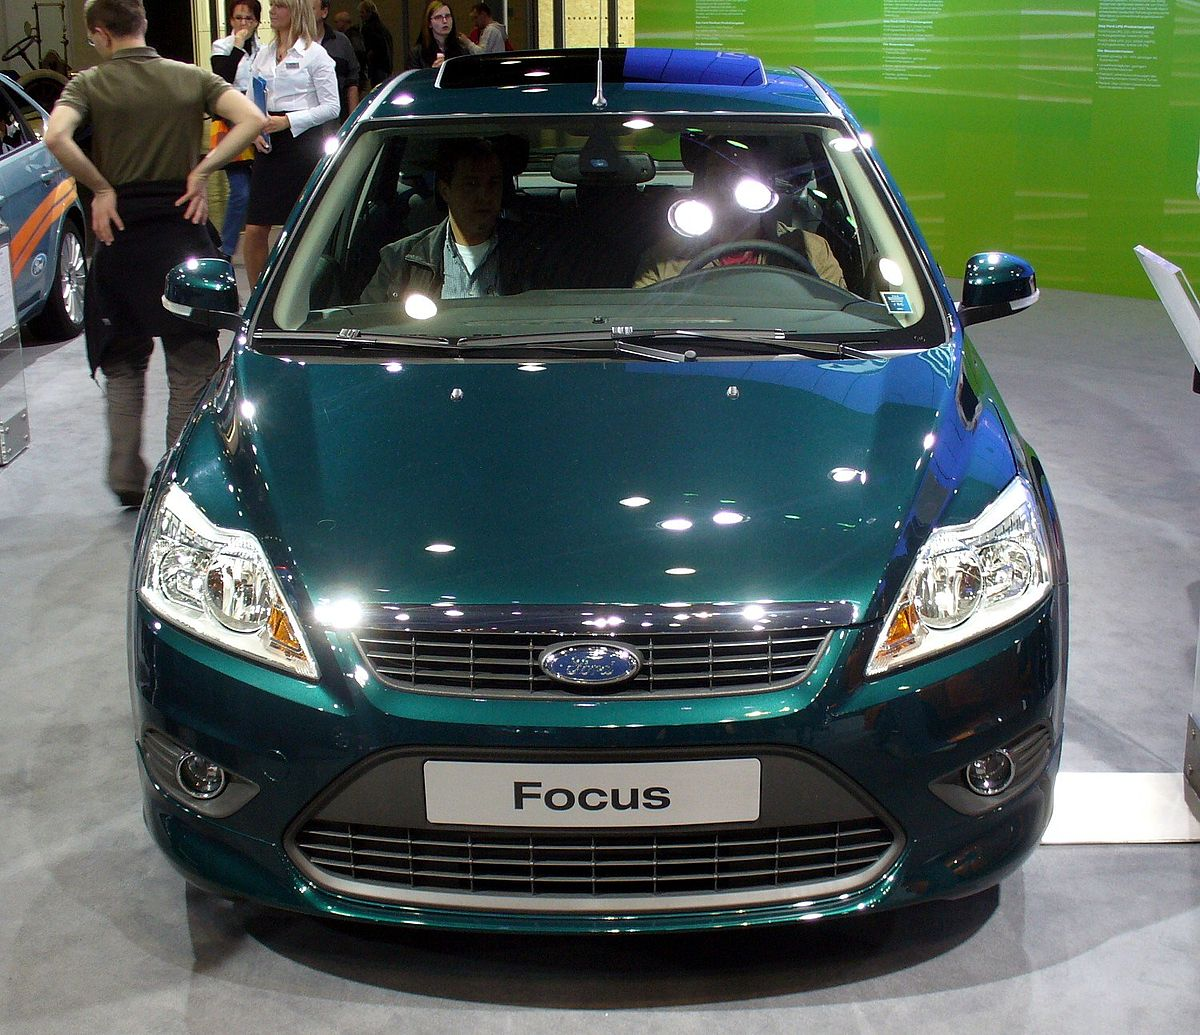 bi-fuel ford focus c-max что это